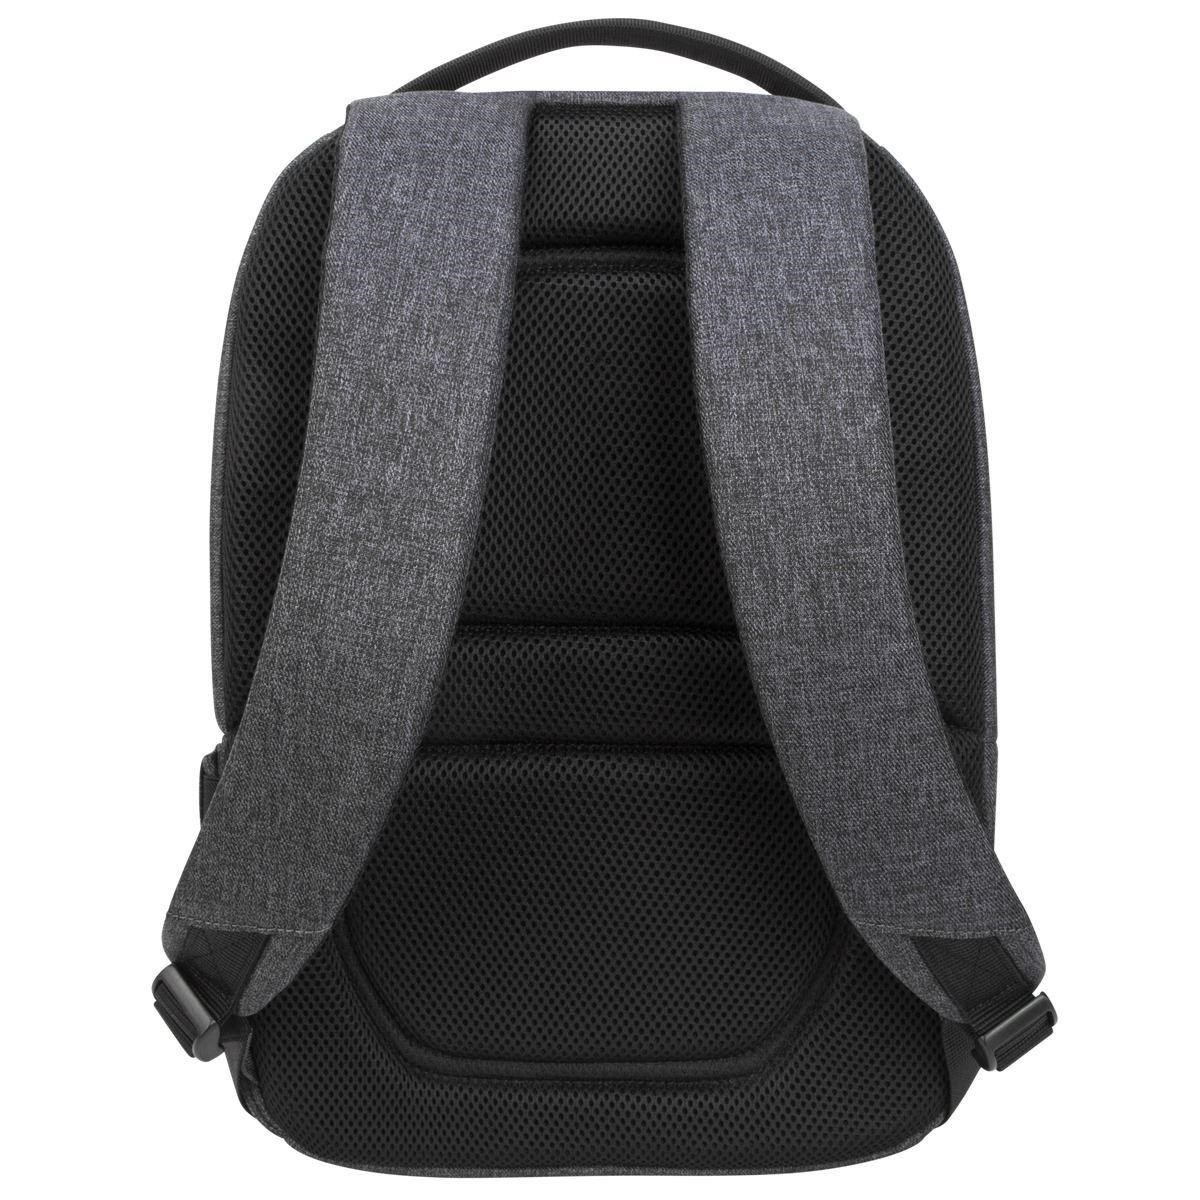 c7cb752c8e9a Targus Groove X2 Compact Backpack (Charcoal) for 15 inch Laptops ...